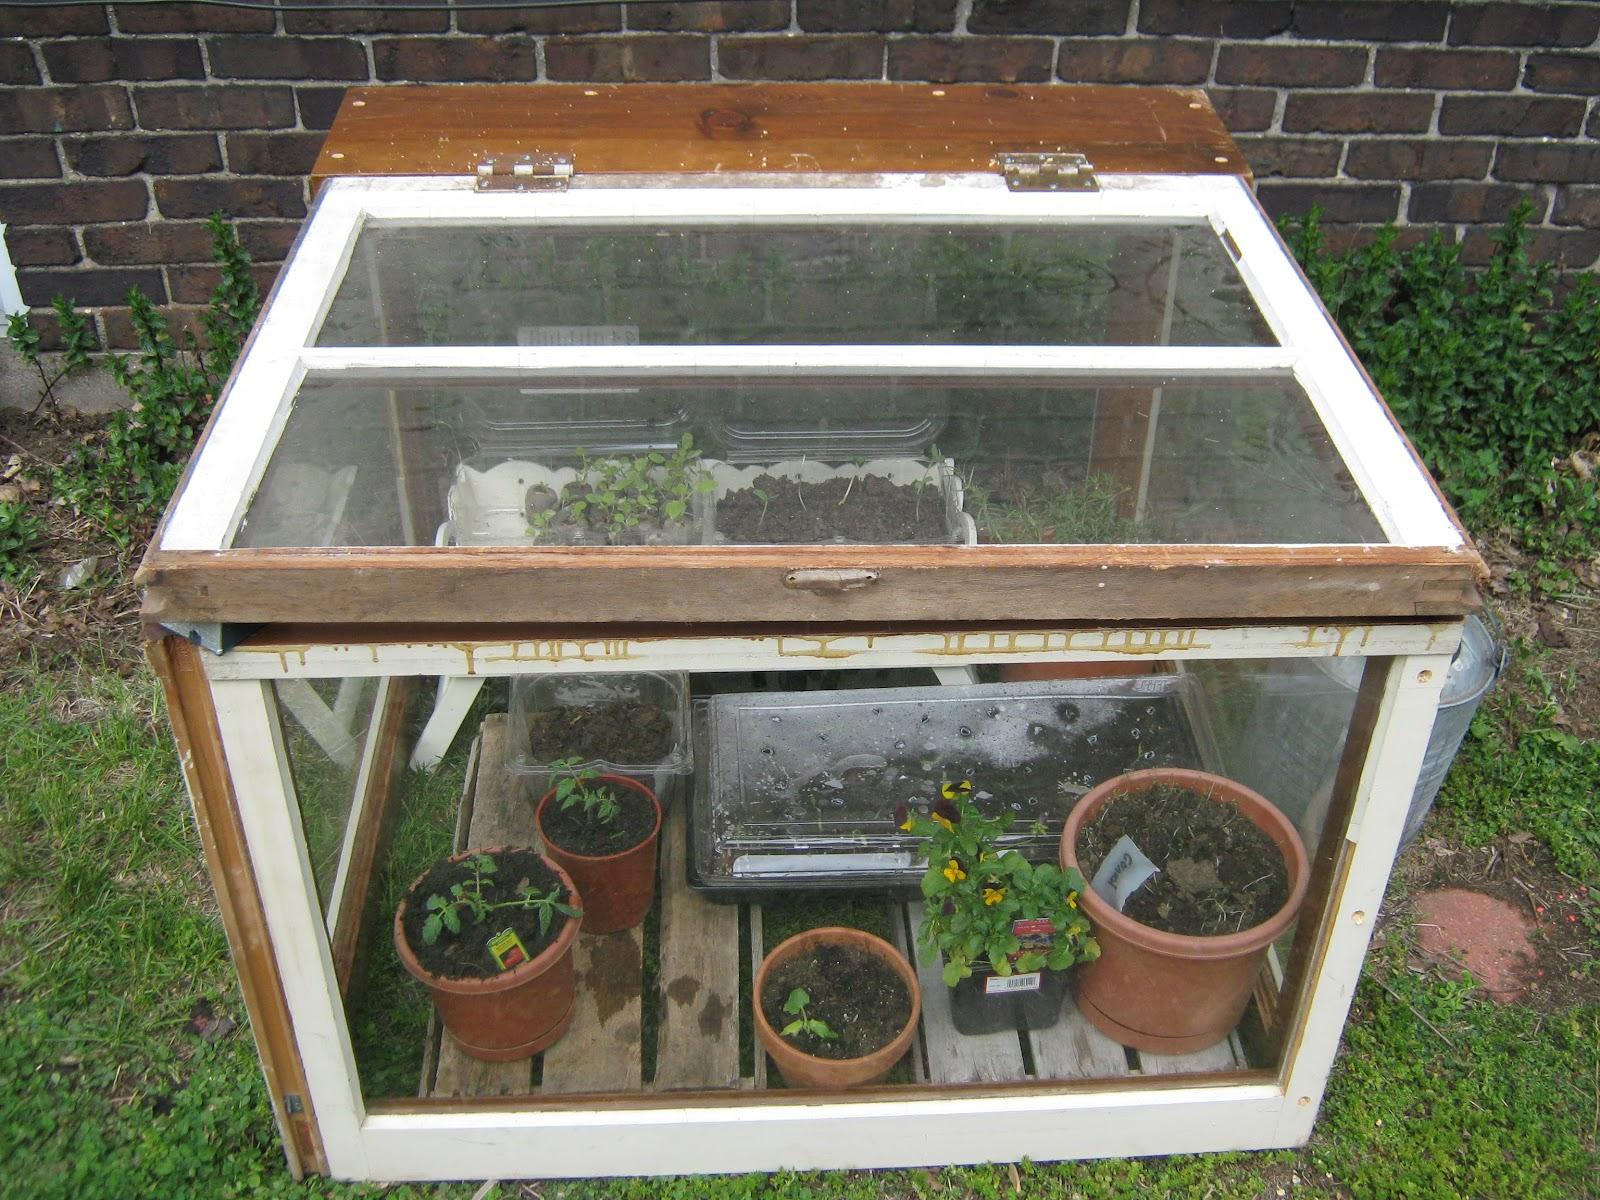 AntB Pottery: Mini Greenhouse or Hot Box